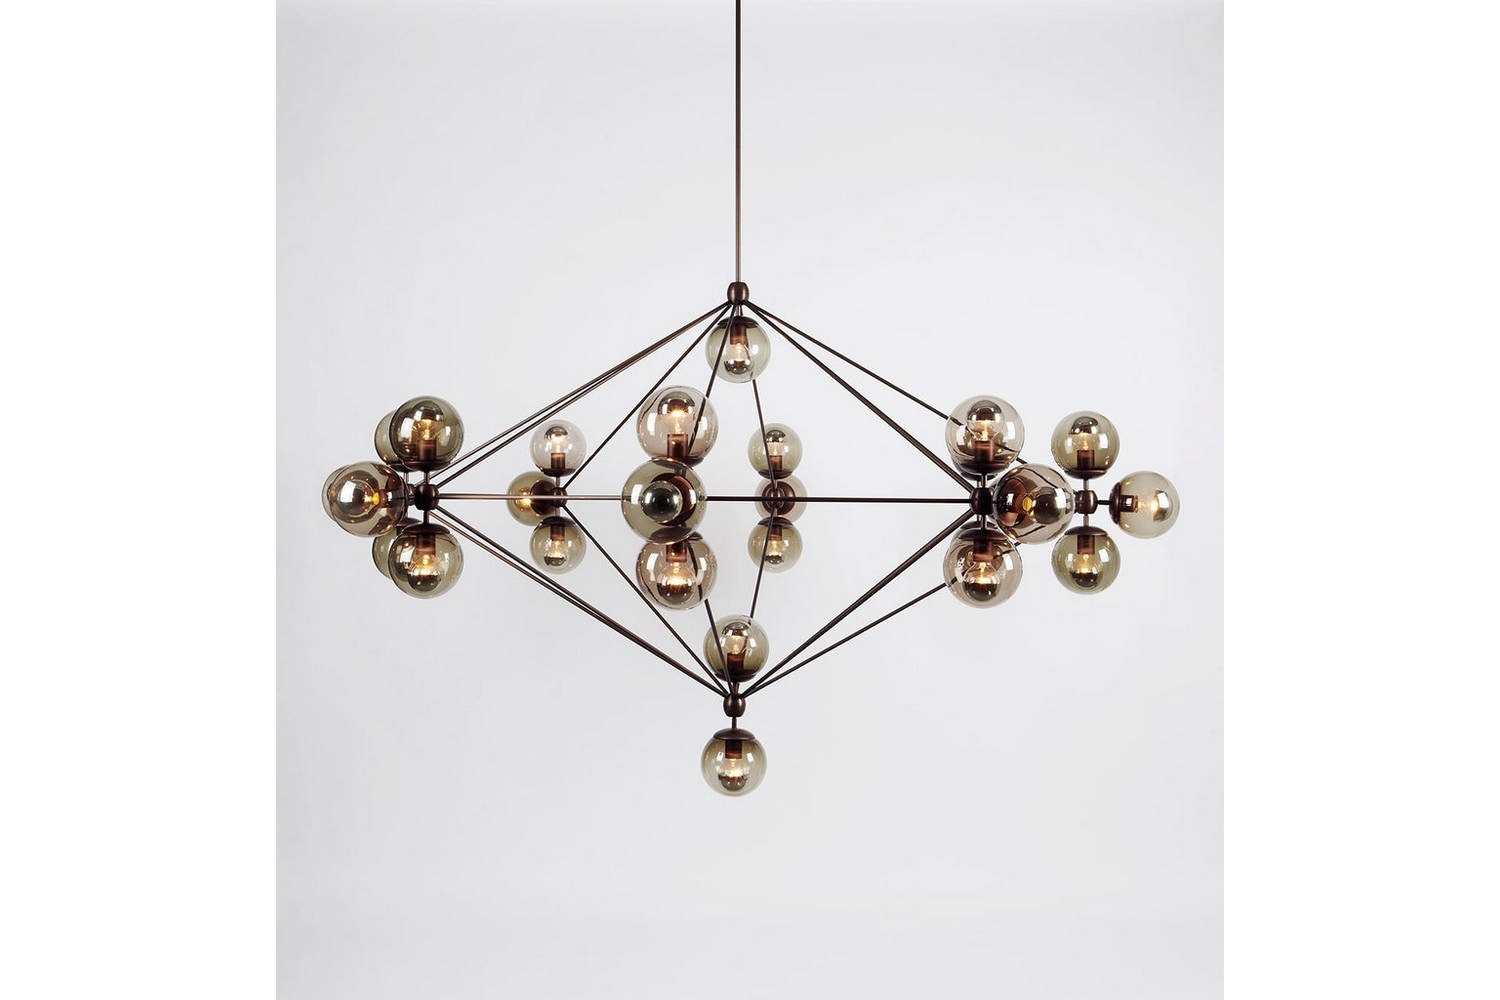 Modo Chandelier - 8 Sided, 27 Globes by Jason Miller for Roll & Hill